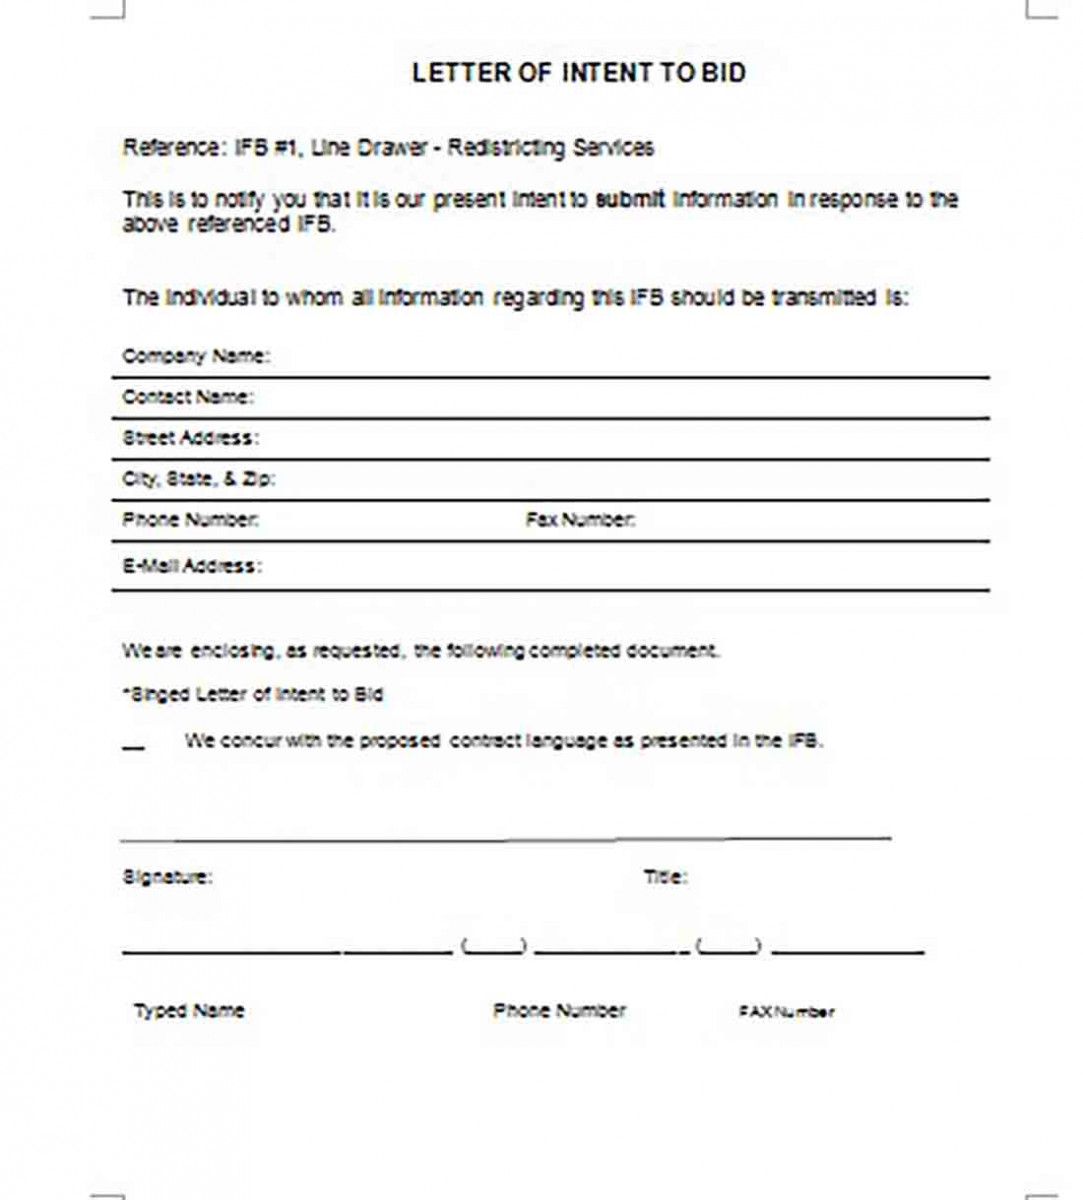 Letter of Intent to Bid templates